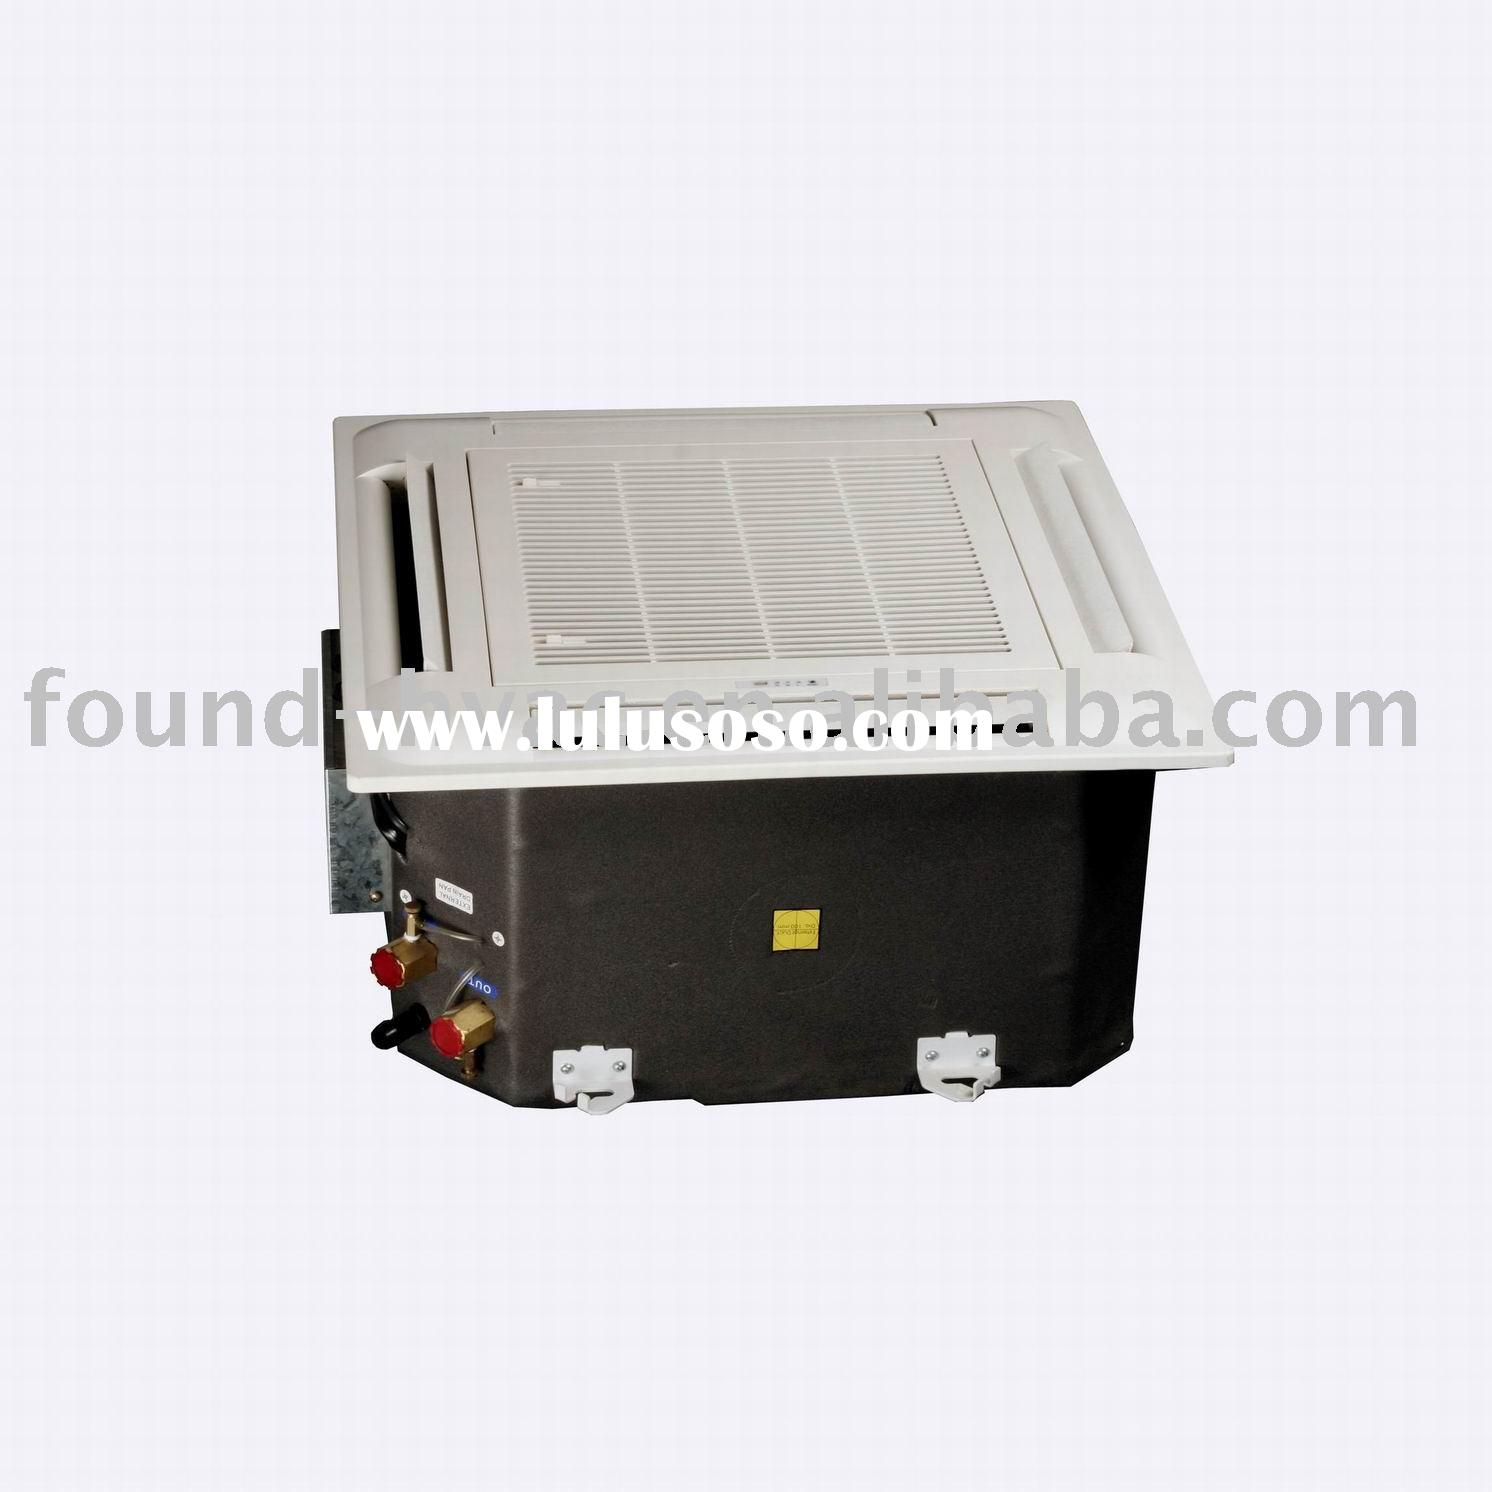 Fan Coil Unit;FCU;Ceiling fan coil unit;4-way fan coil/cassette fan coil unit/chilled water fan coil